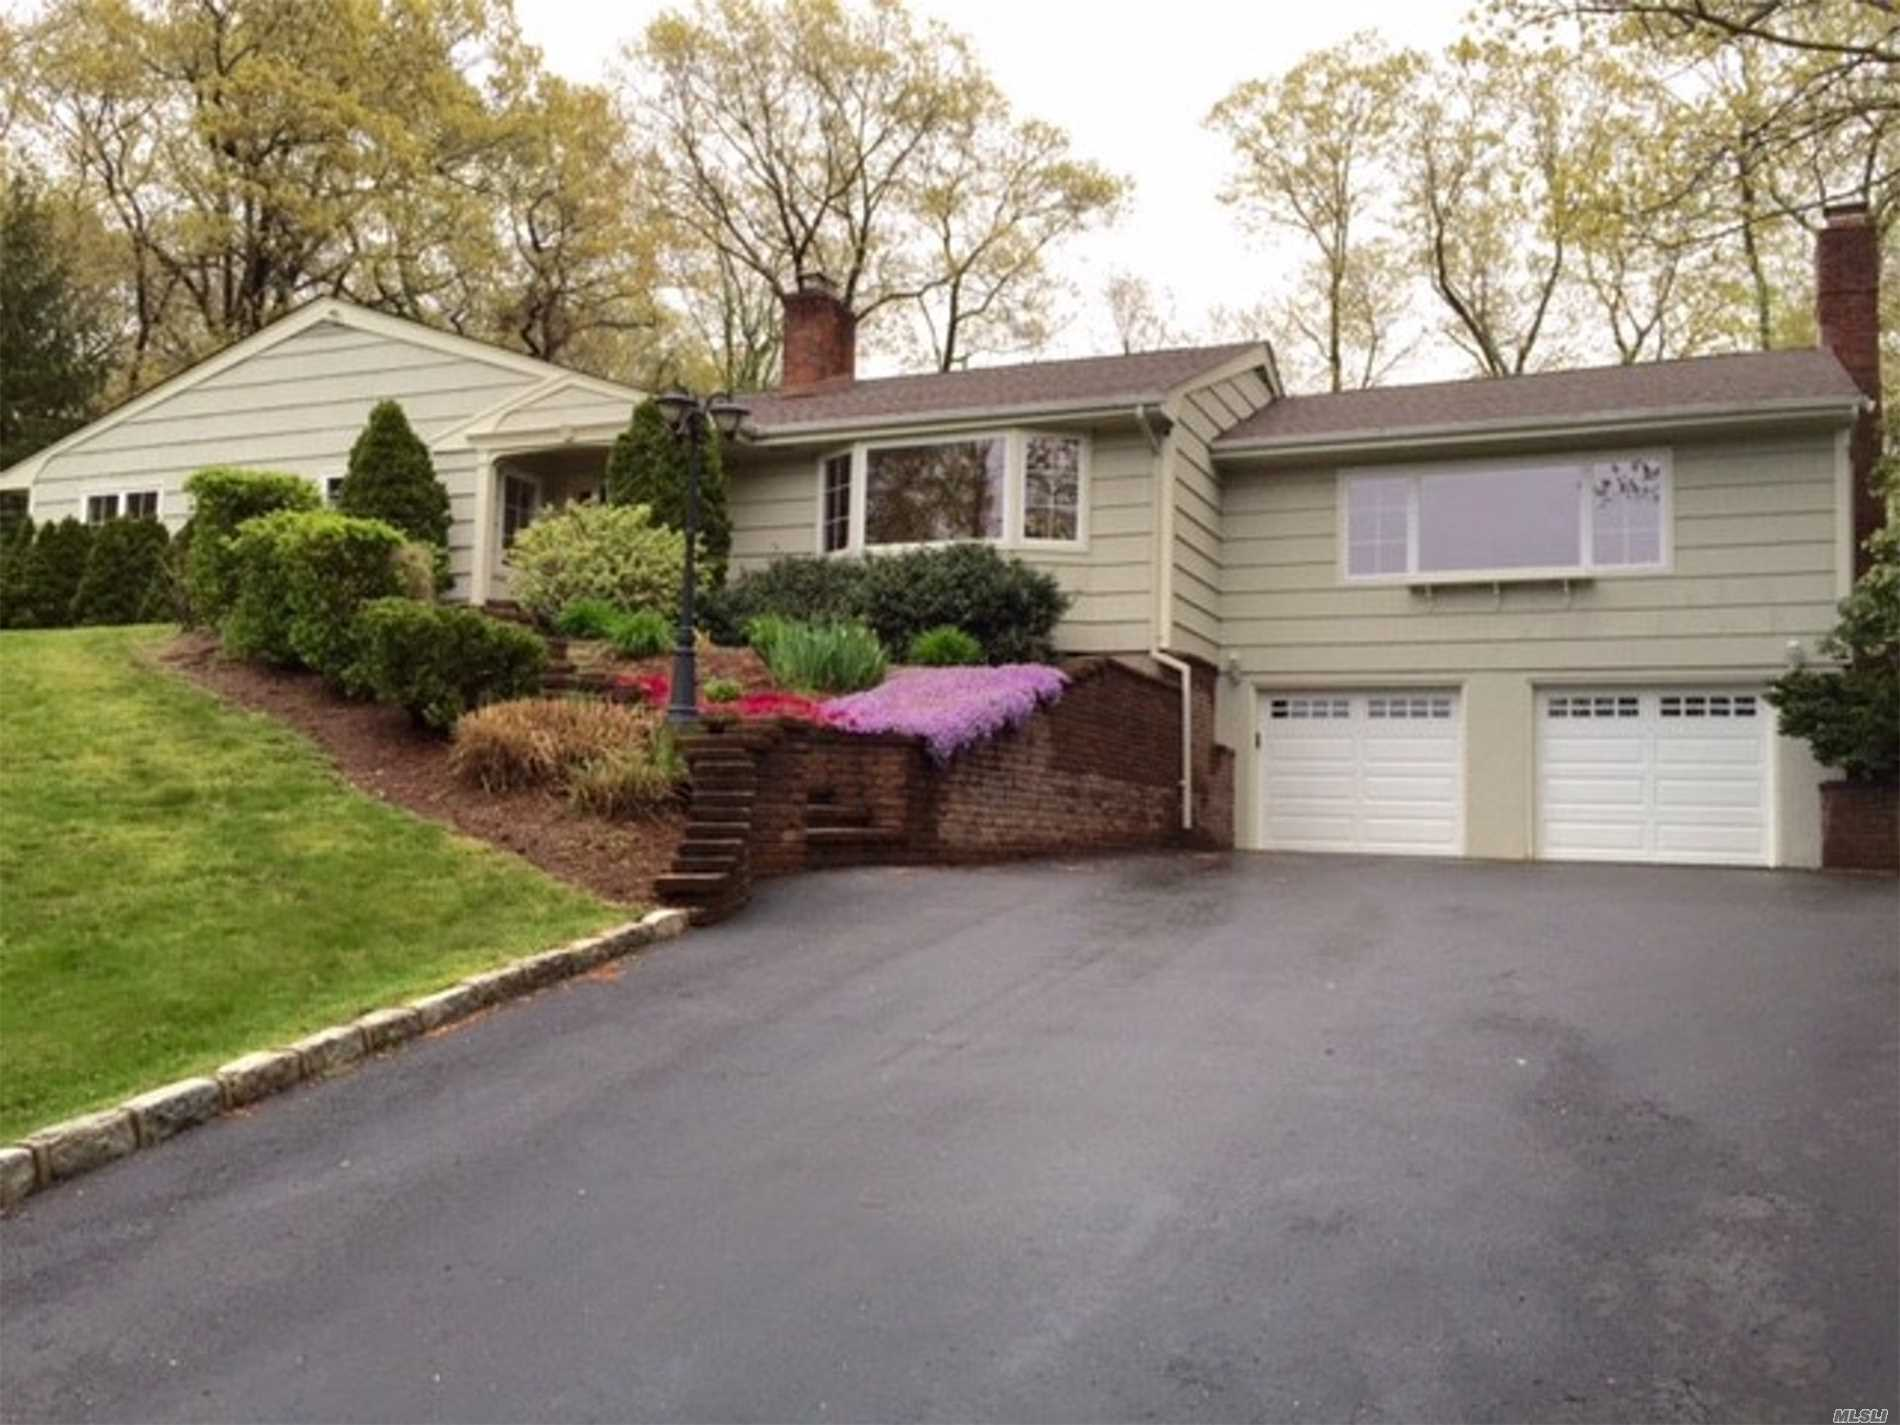 Sprawling Updated Ranch On 1.2 Acres W/Seasonal Water Views. Grand Sized Dining Room, Living Room W/Fireplace, Great Room W/Stone Fireplace And Vaulted Ceiling.Commanding Views Of Property And Li Sound. Callahan Beach Exclusive To Smithtown Residents About 2 Miles Away.Kings Park Sd#5